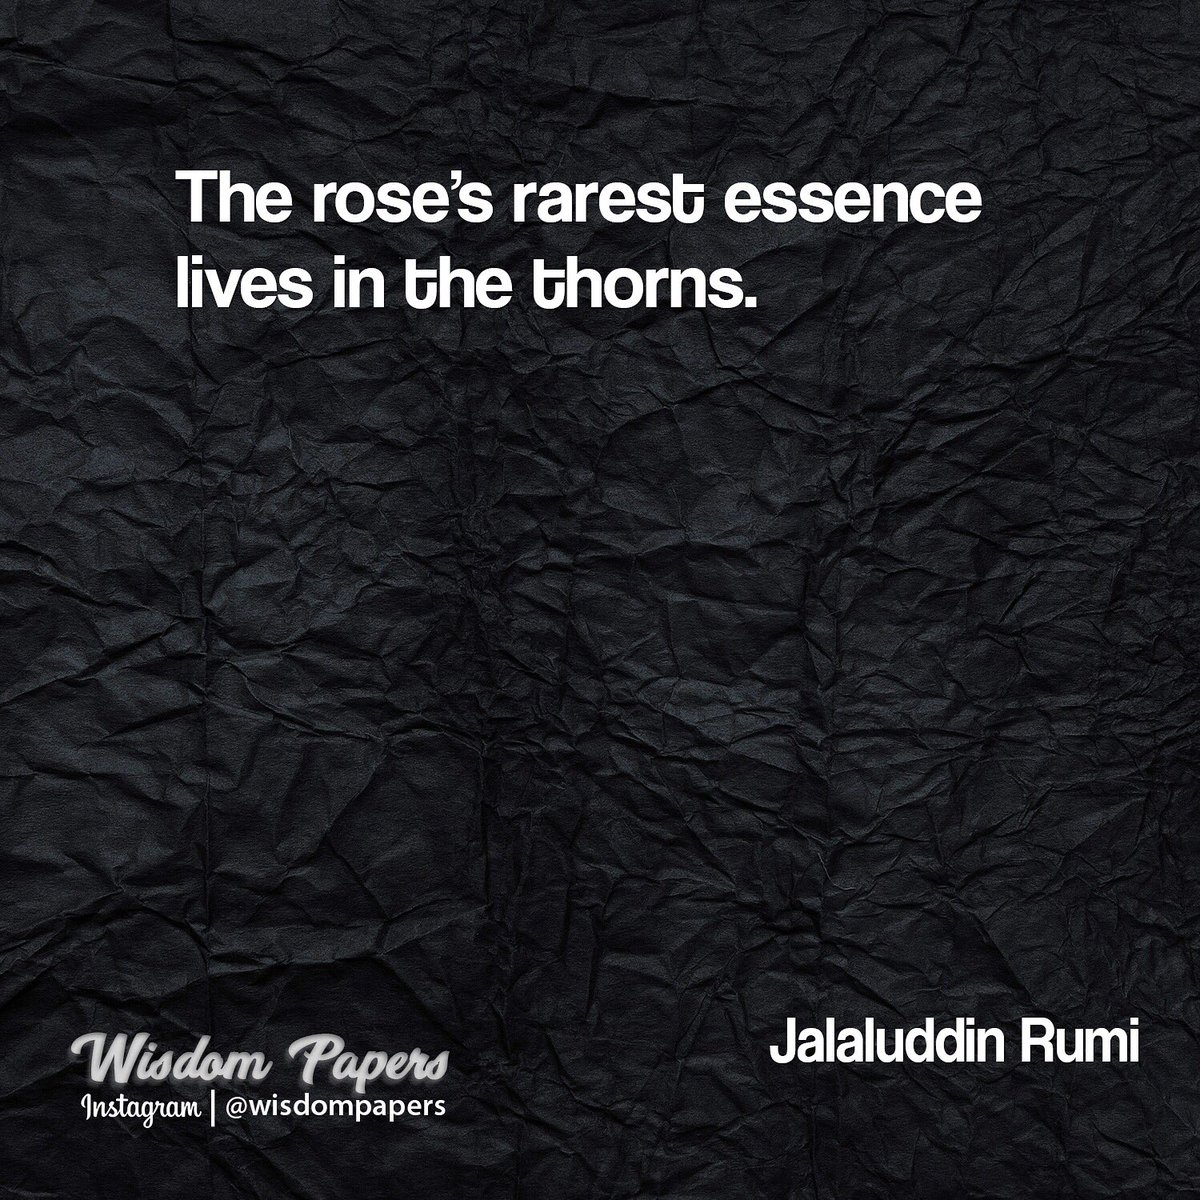 Wisdom Papers On Twitter The Roses Rarest Essence Lives In The